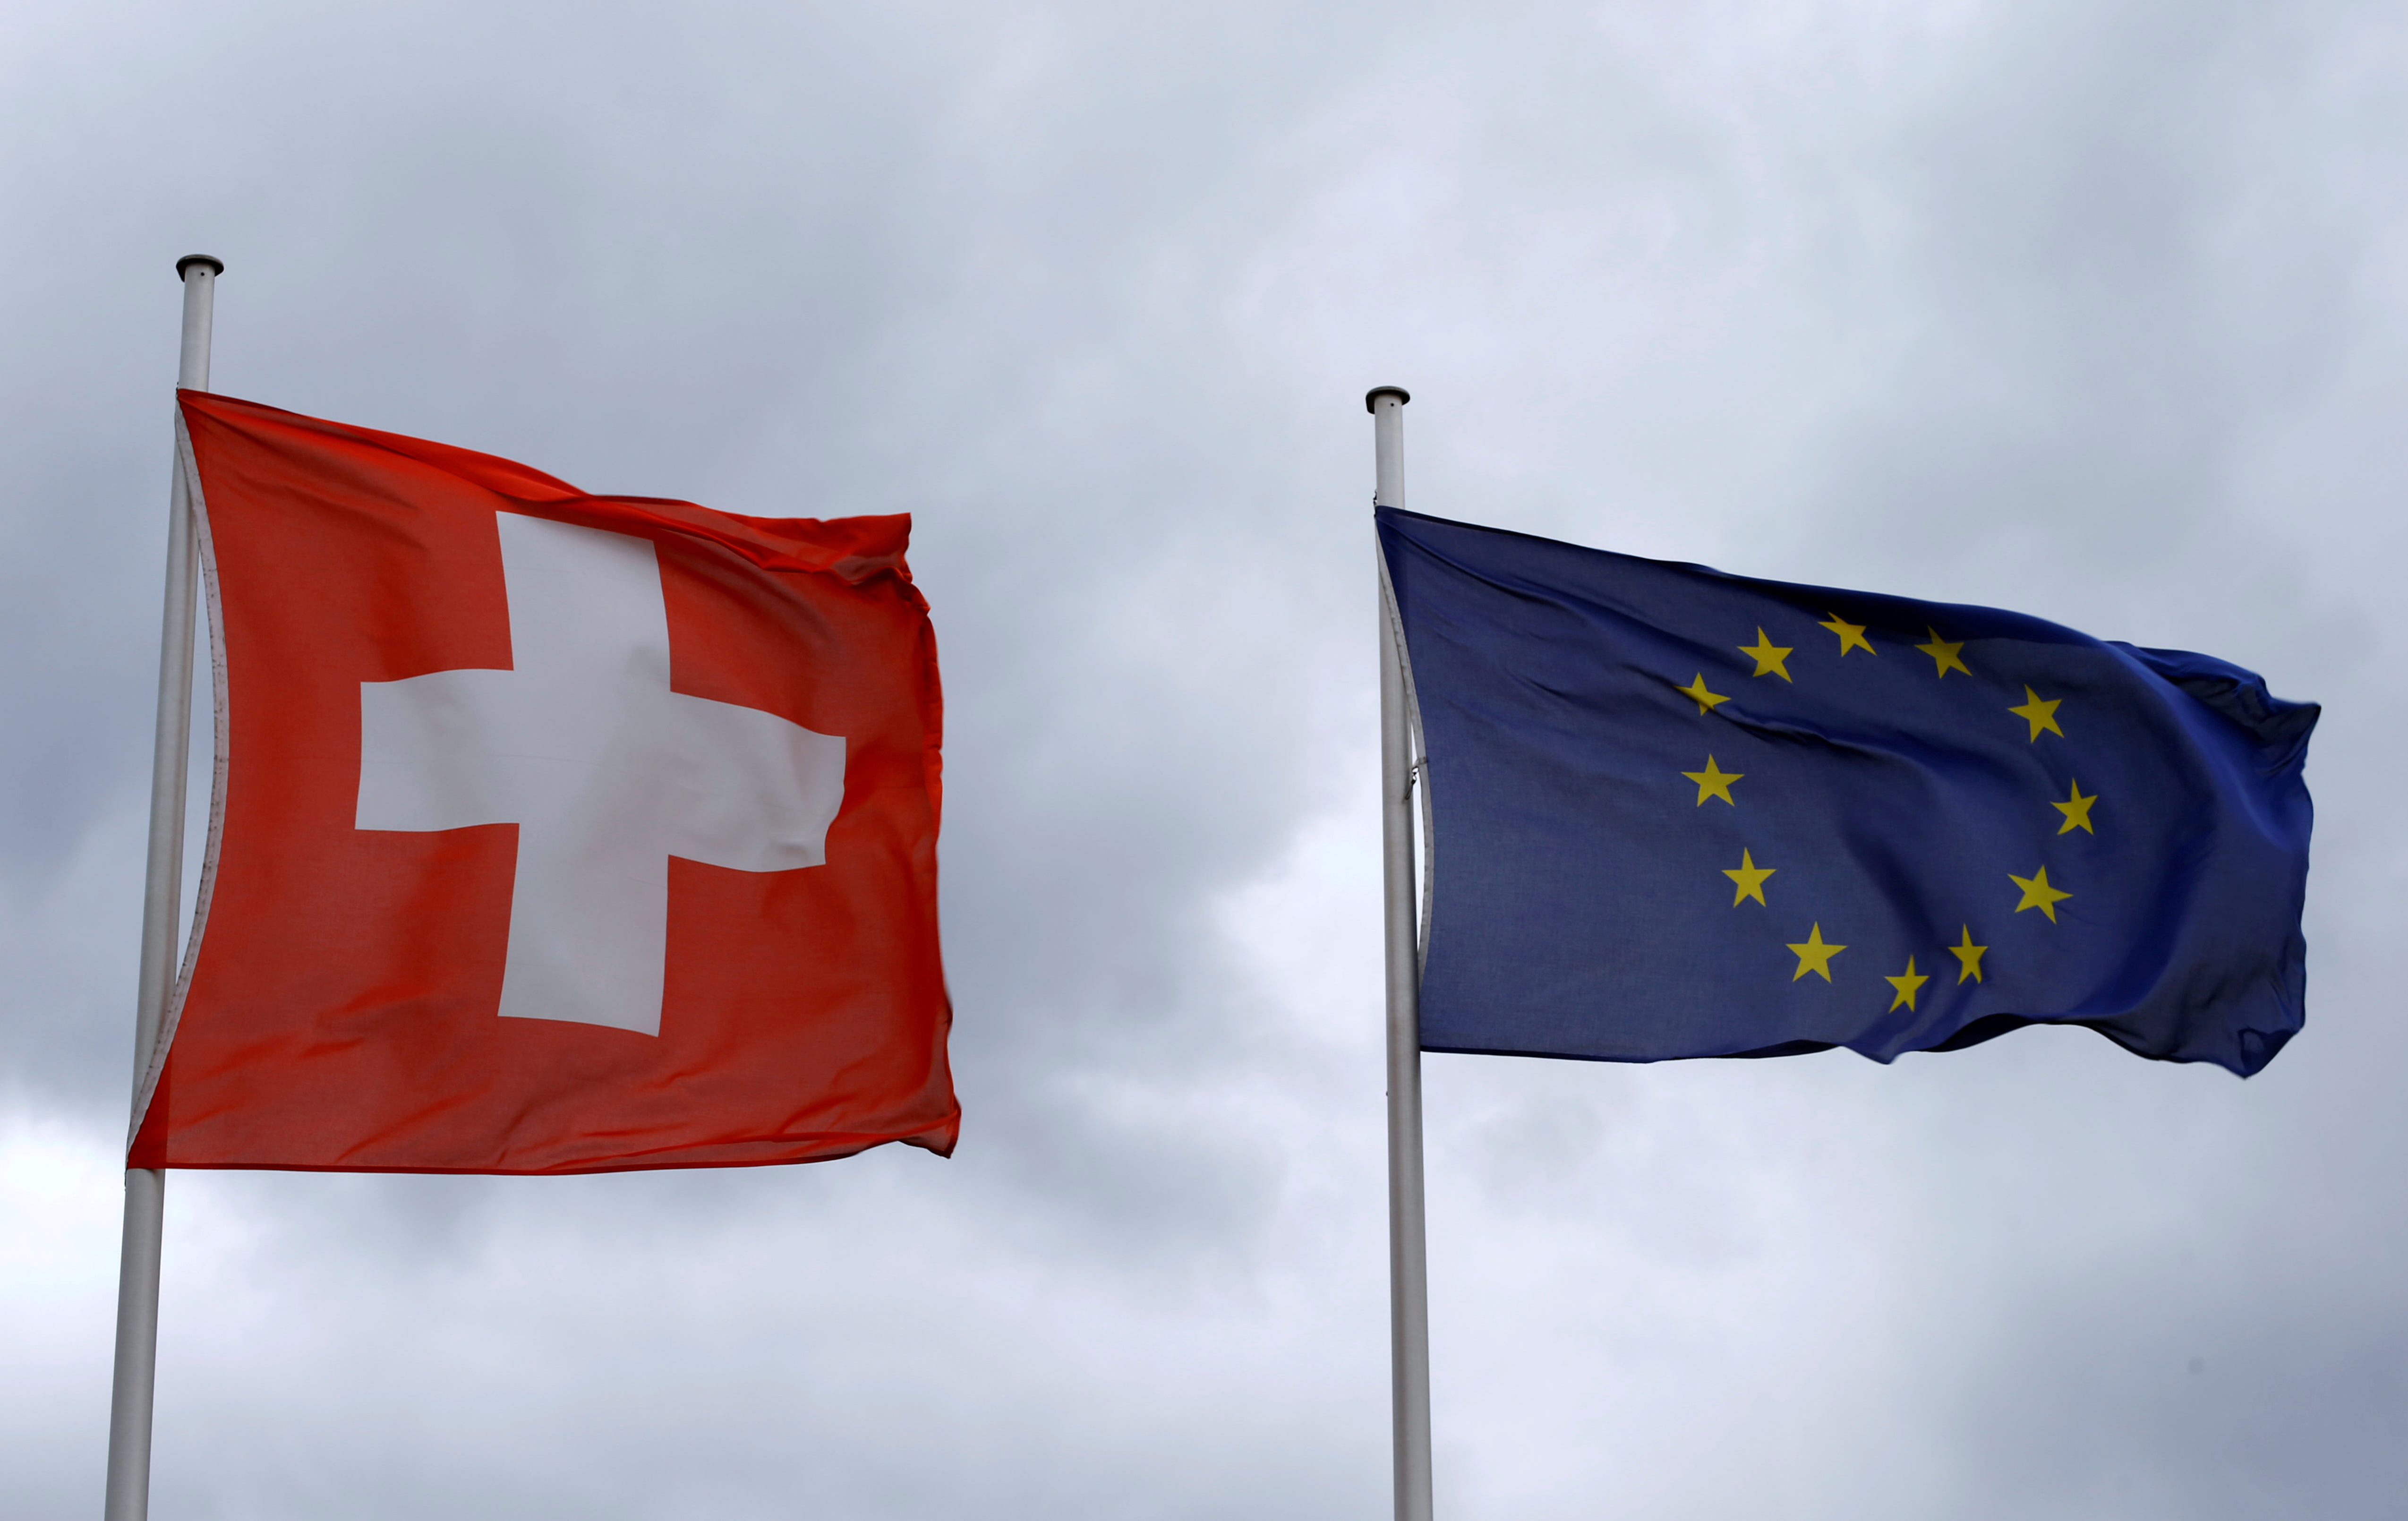 Swiss voters appear to reject limiting jobs for EU citizens